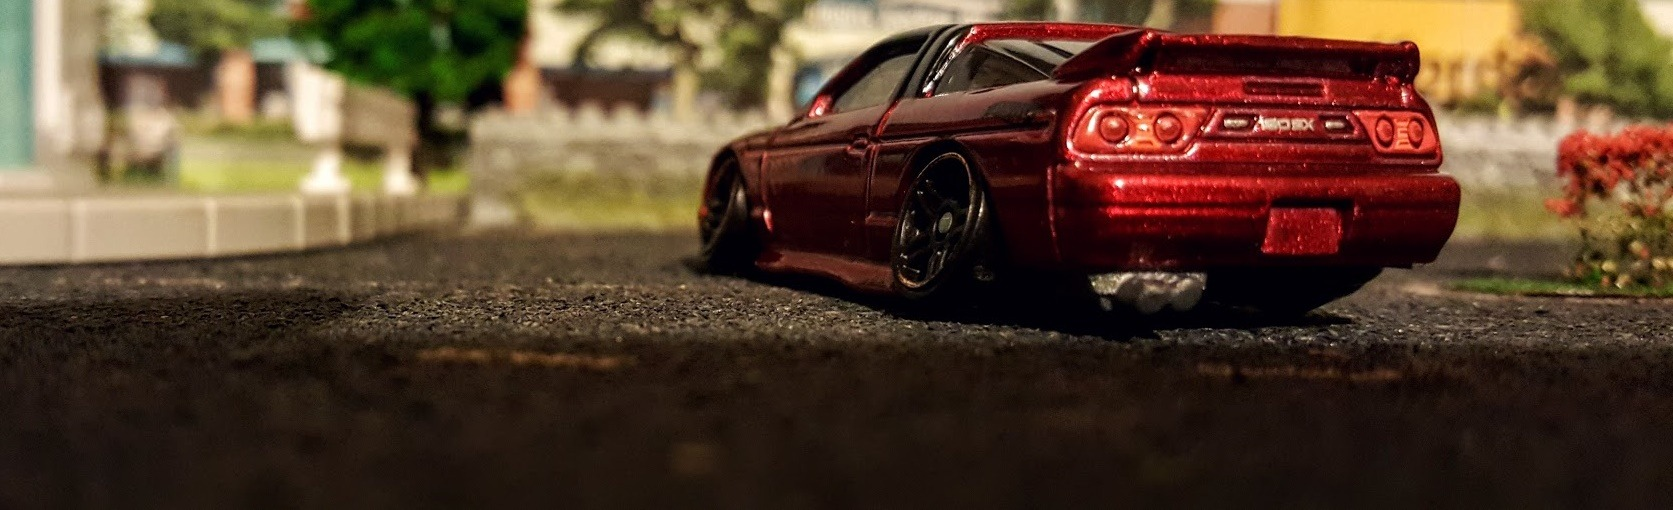 How To Stance Your Hotwheels Diecast Cars